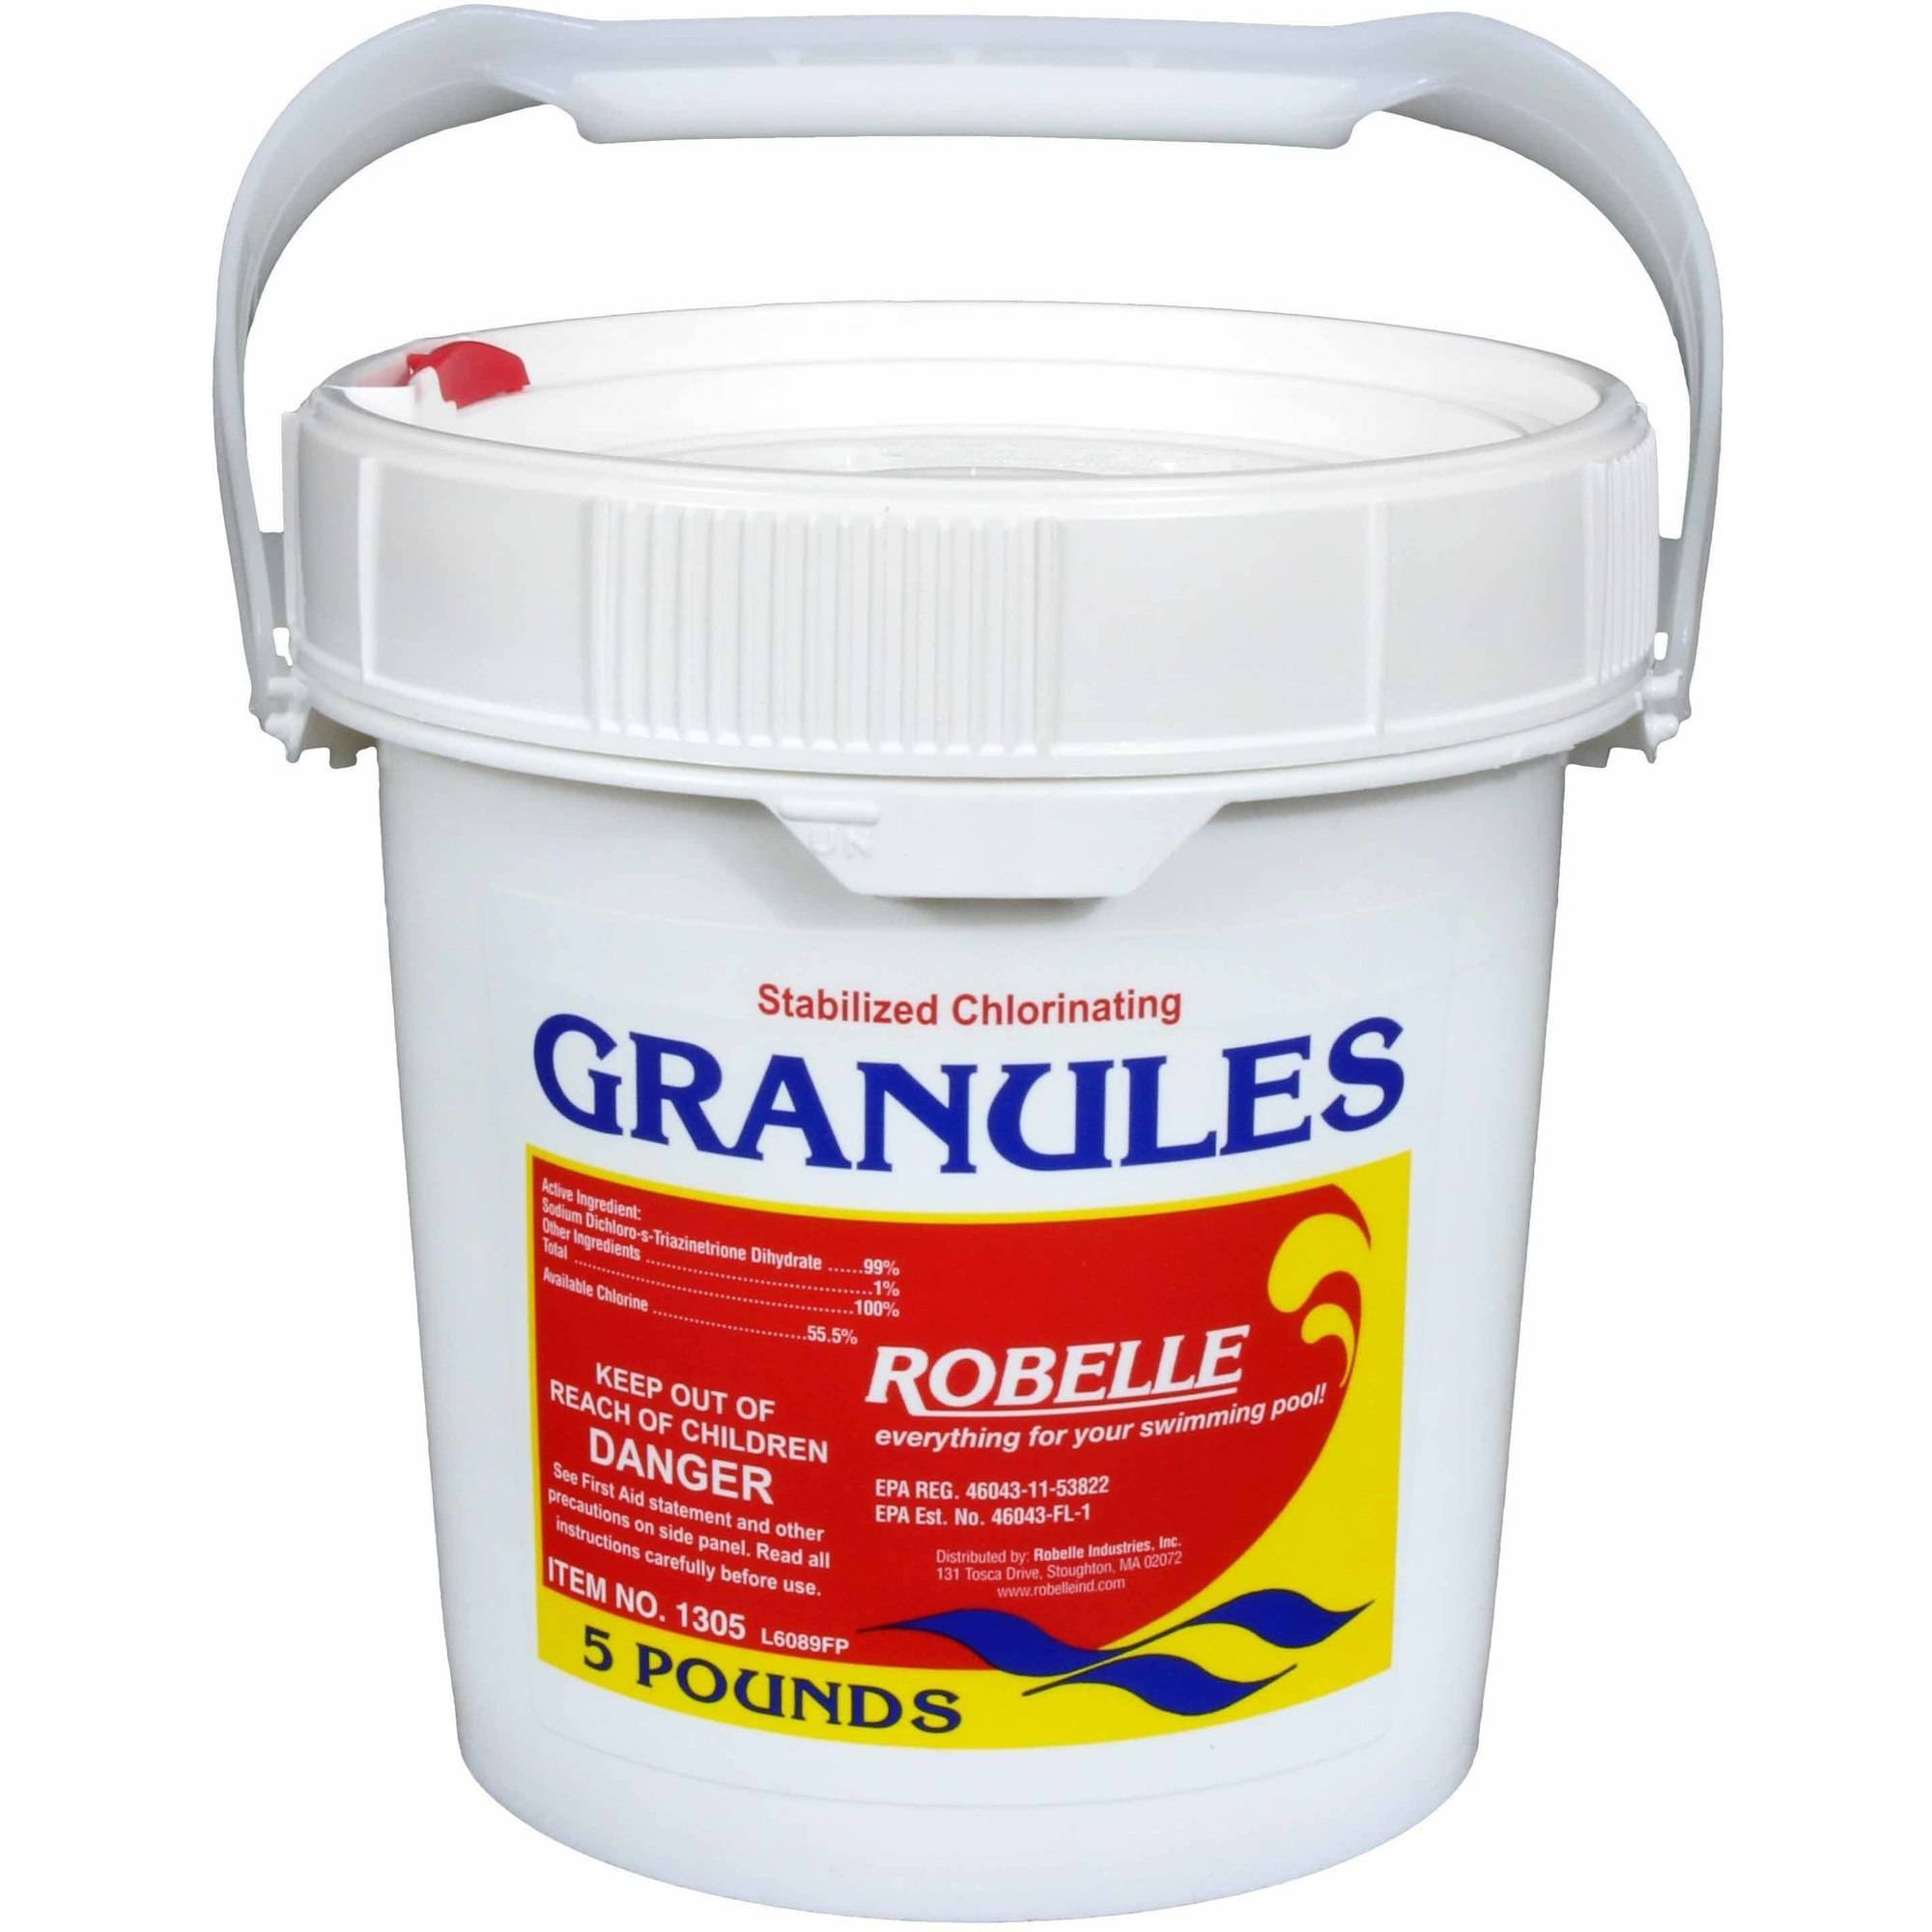 Robelle Stabilized Concentrated Chlorinating Powder Granules